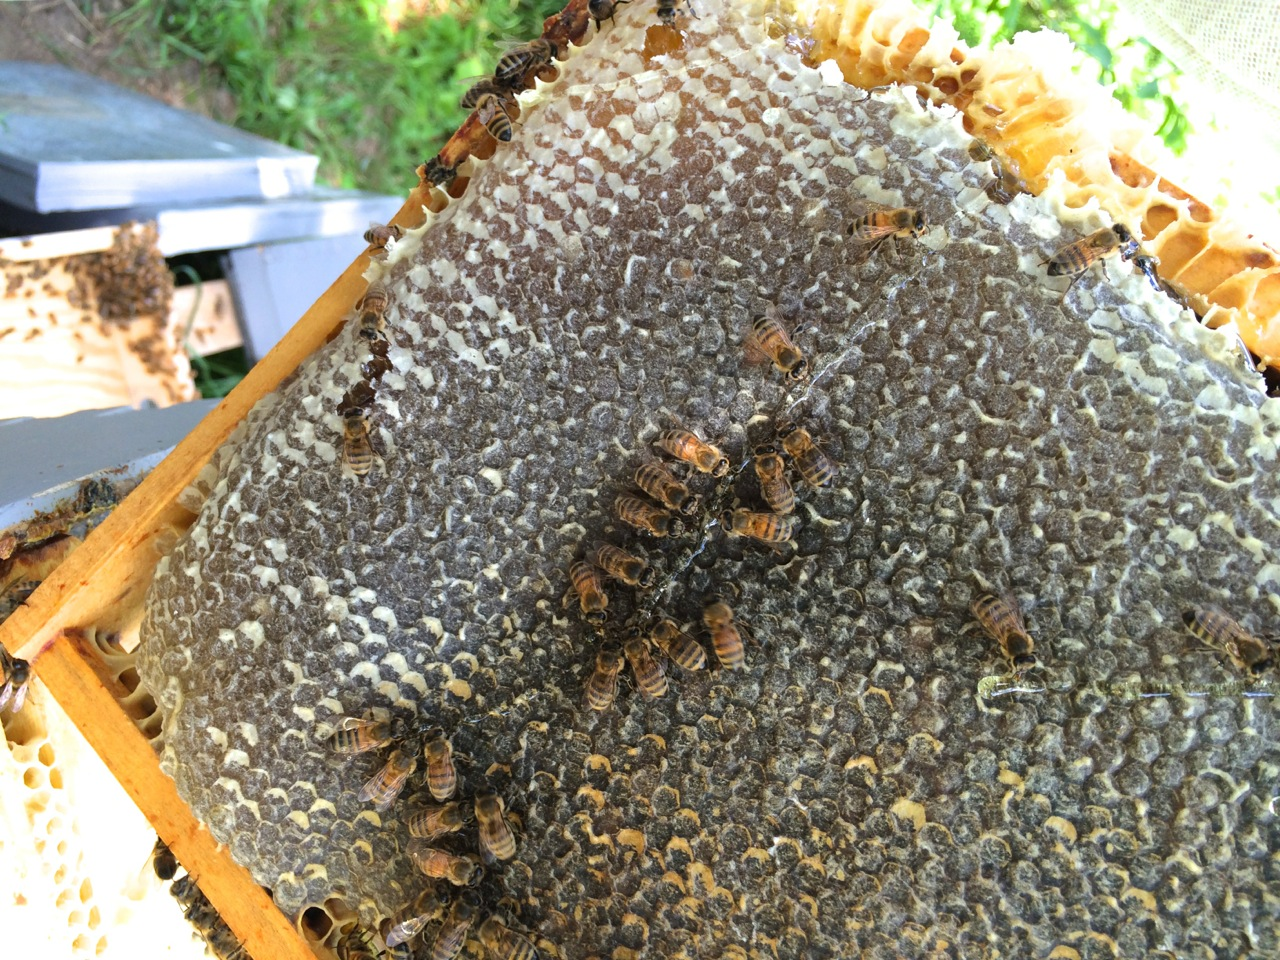 Honey comb dripping, How to Find the Highest Quality Raw Honey - Advice from a Beekeeper | Whole-Fed Homestead